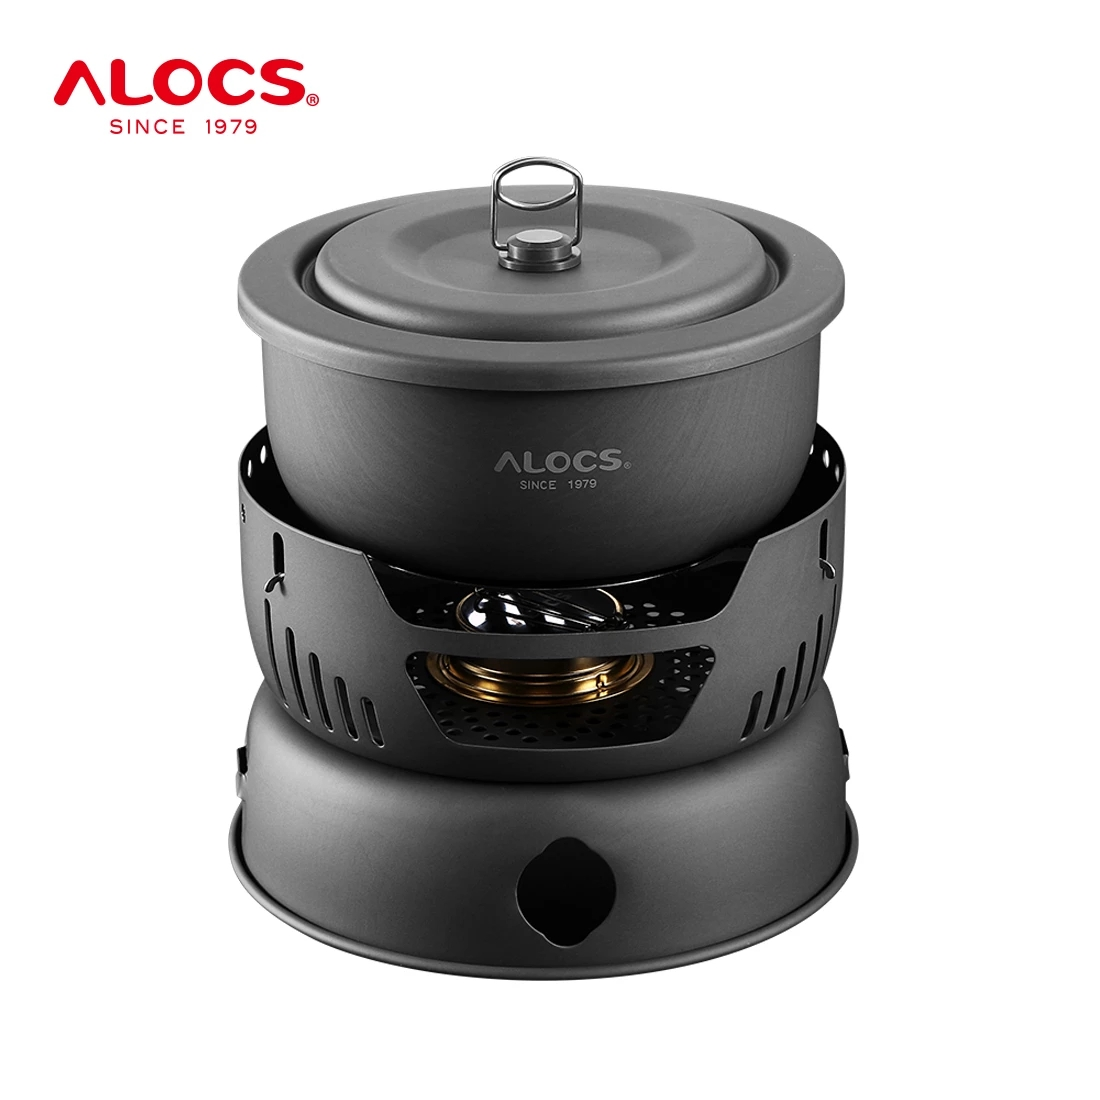 Alocs 2-4 Person Cooking Set 10 Pieces Camping Cookware Outdoor Hiking Picnic Utensil Spirit Stove Alcohol Cooker Pot Windshield